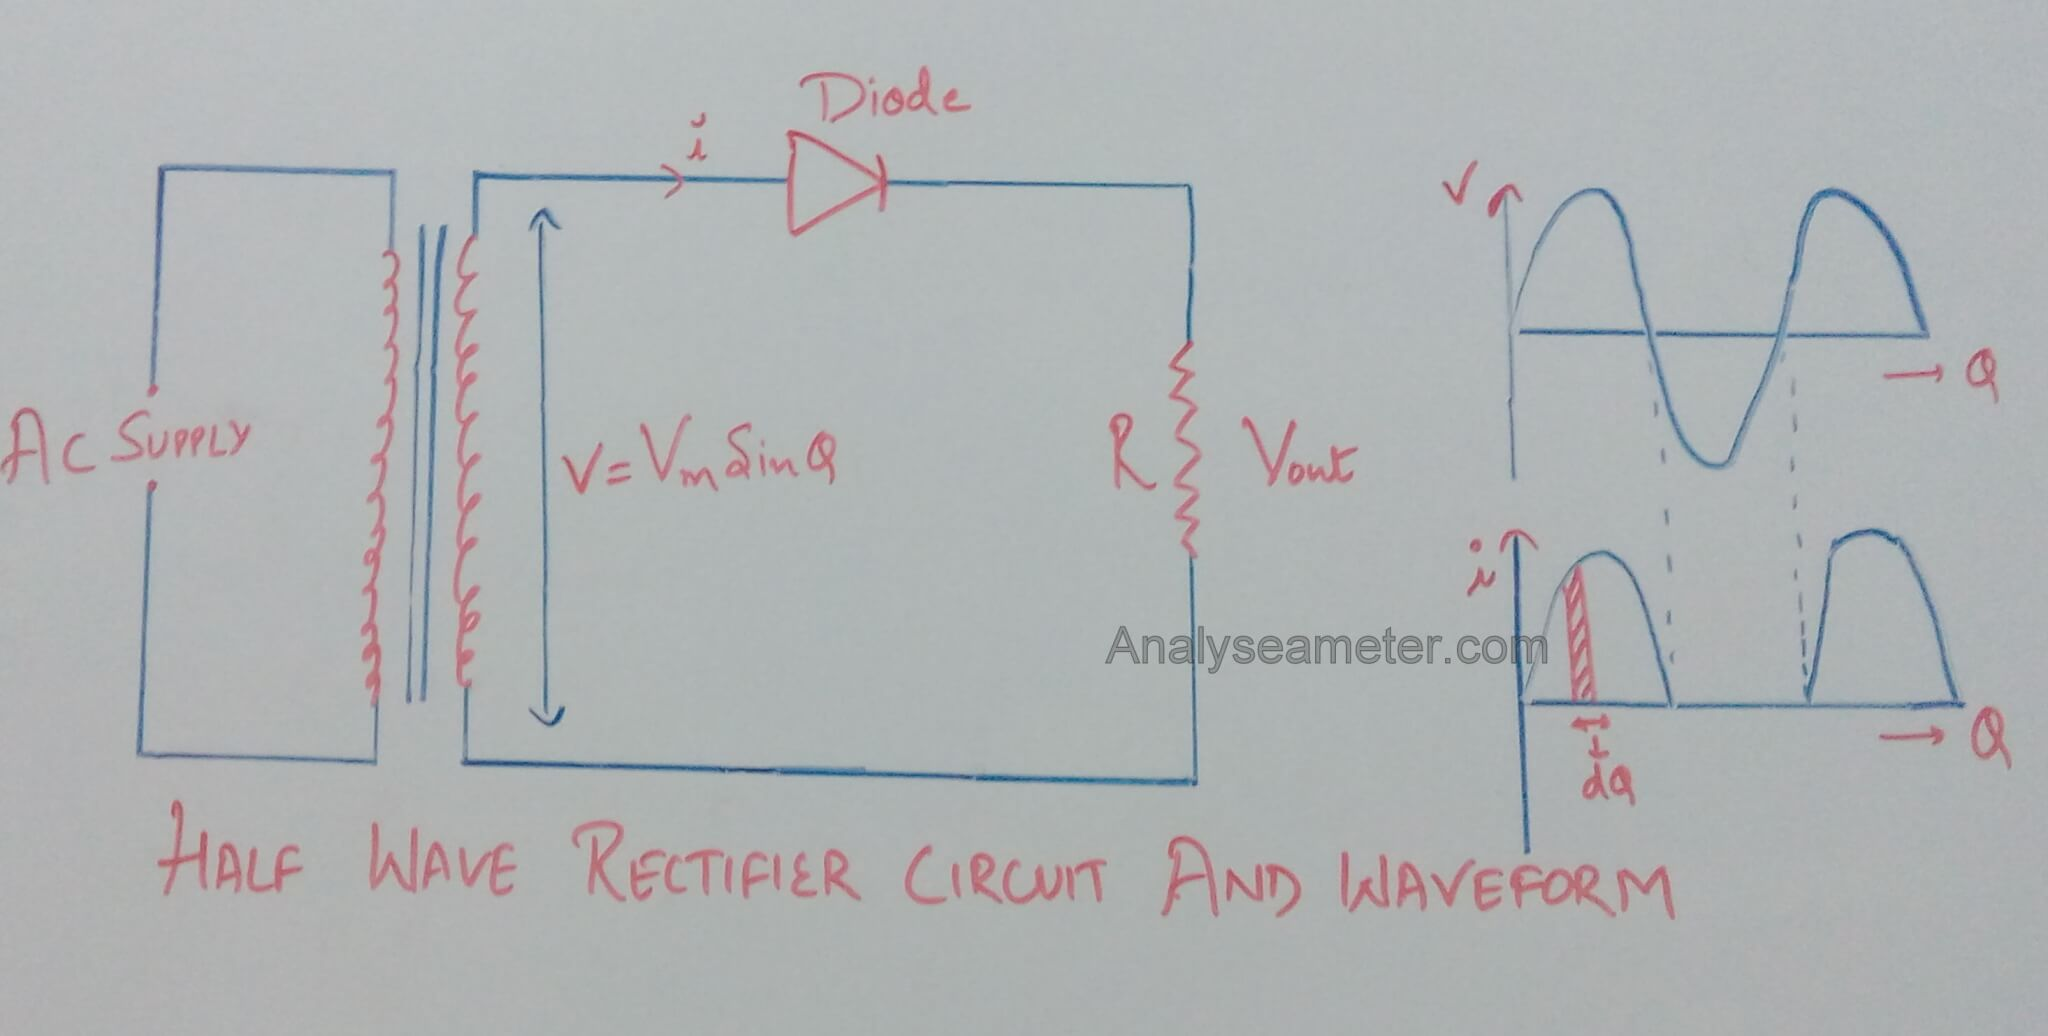 Efficiency Equation Of Half Wave Rectifier Analyse A Meter Full Connection Diagram Circuit Image